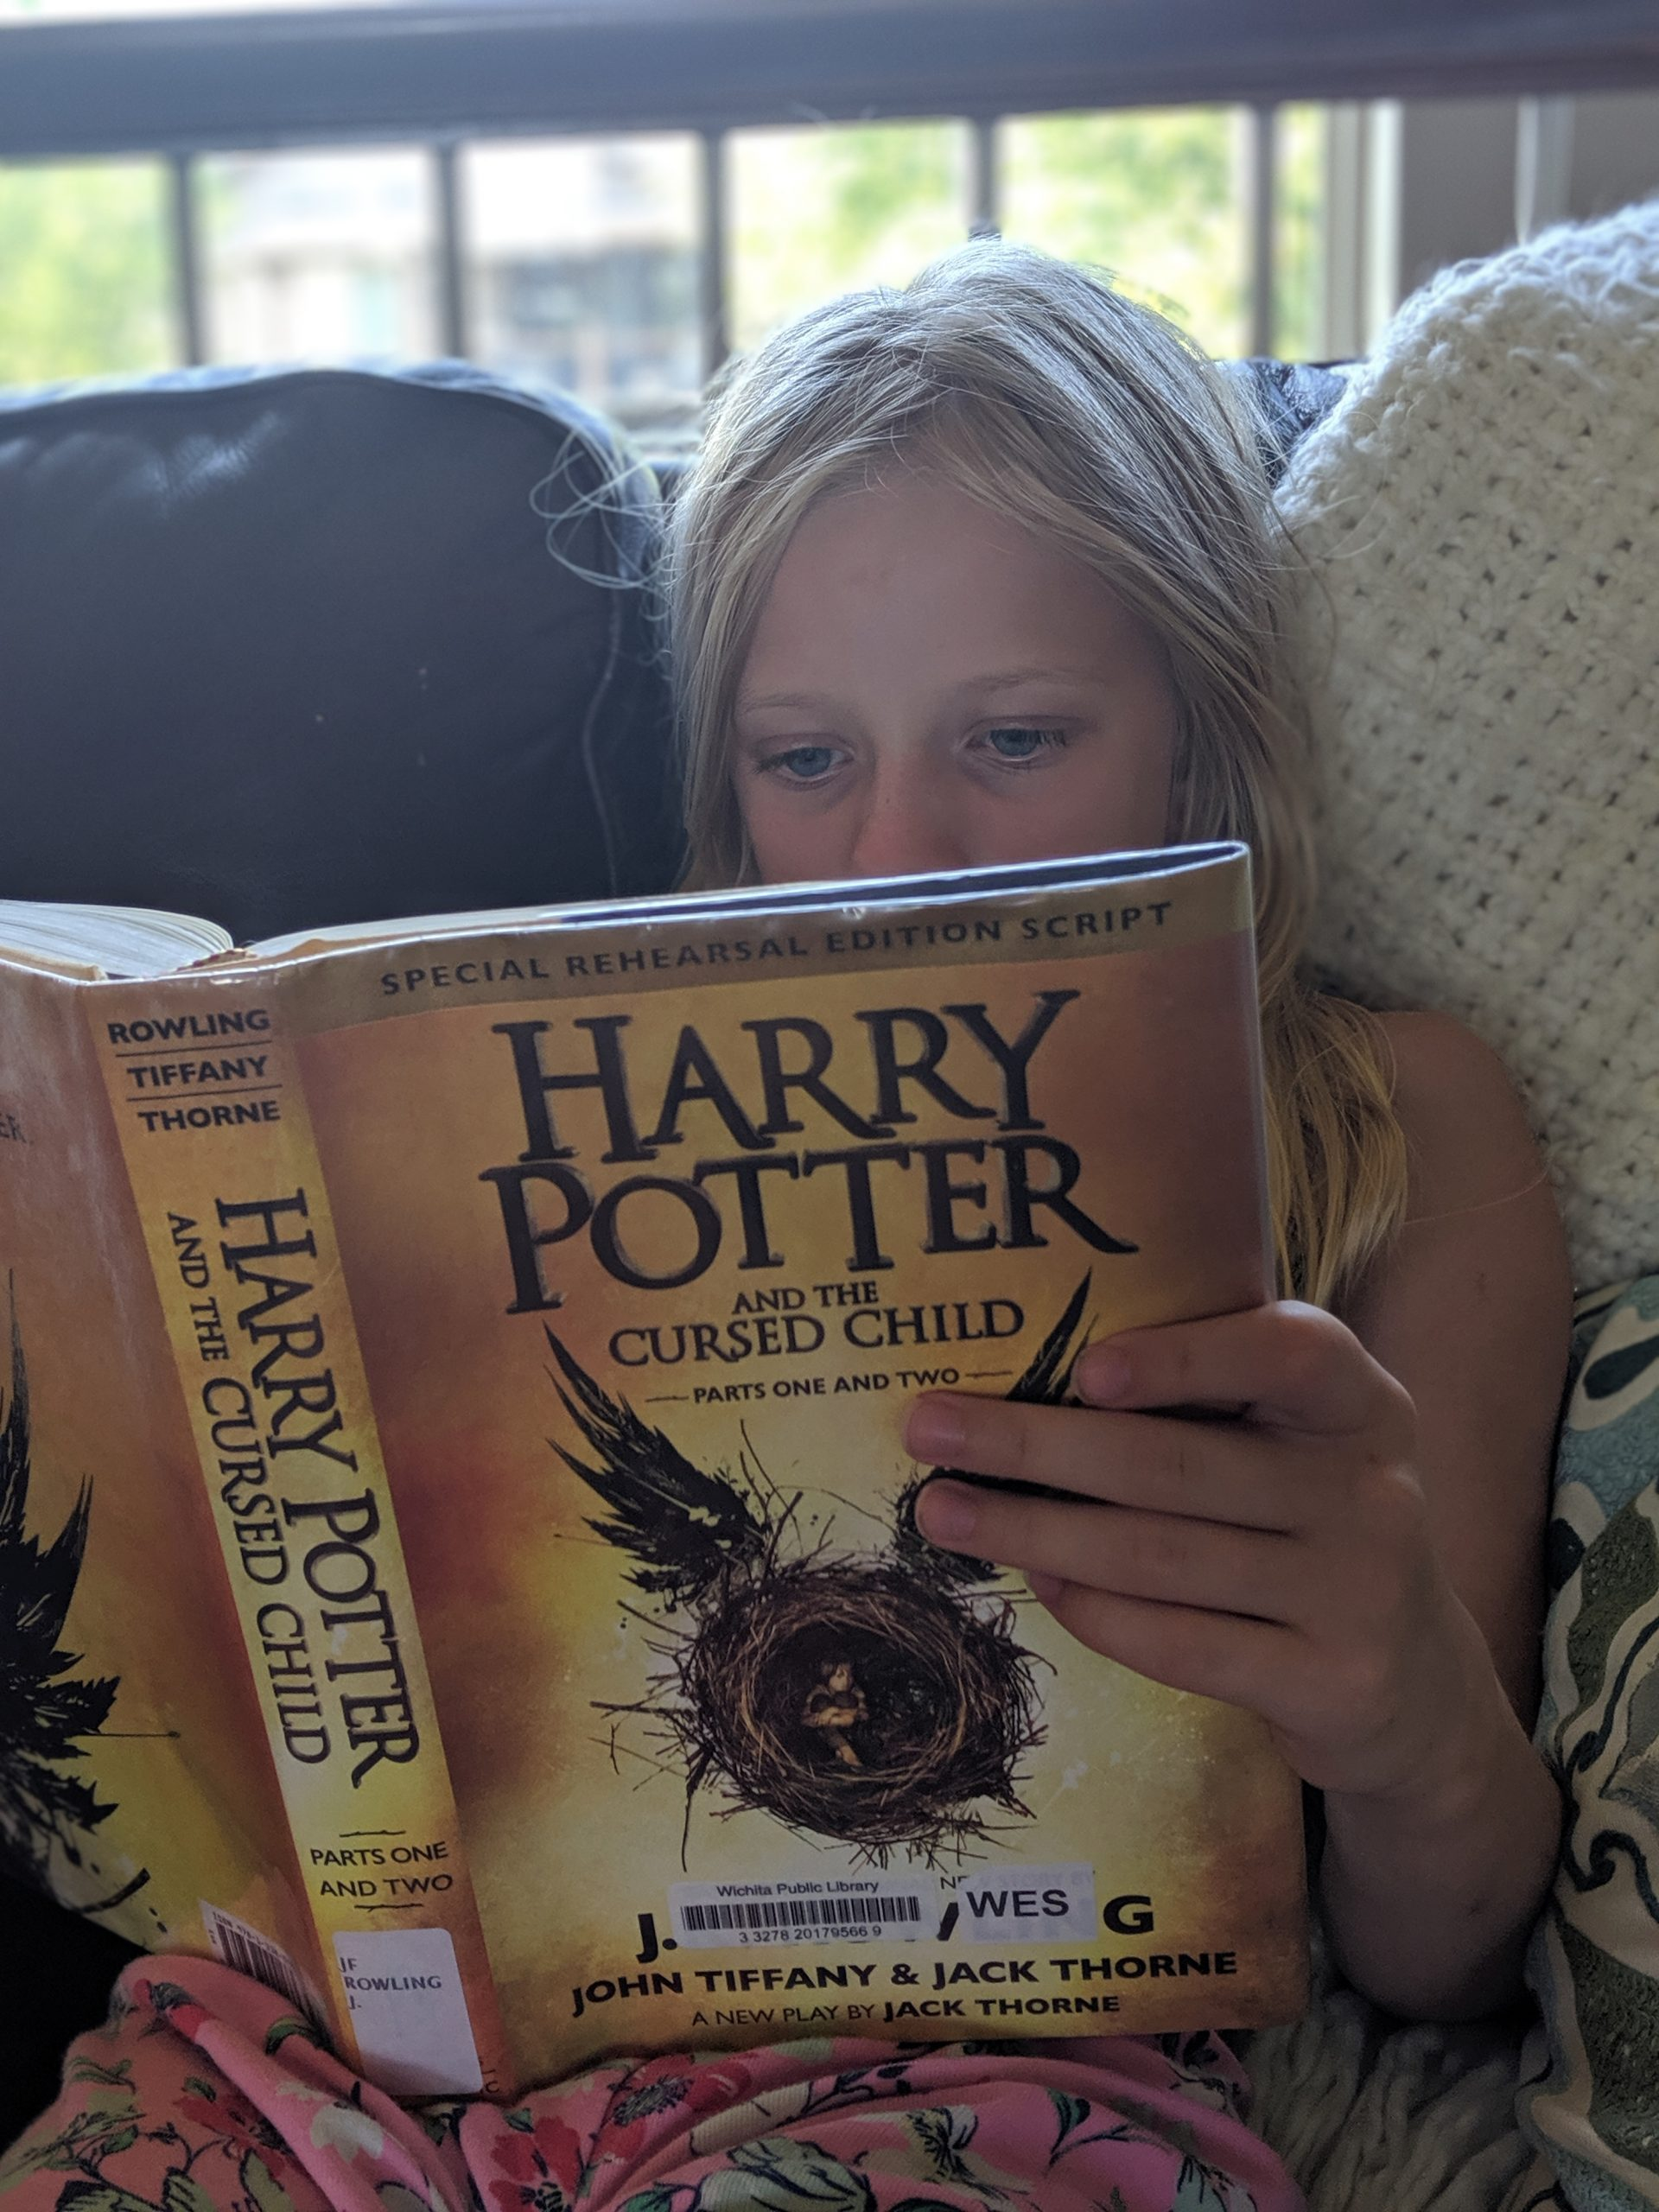 Books to read after Harry Potter